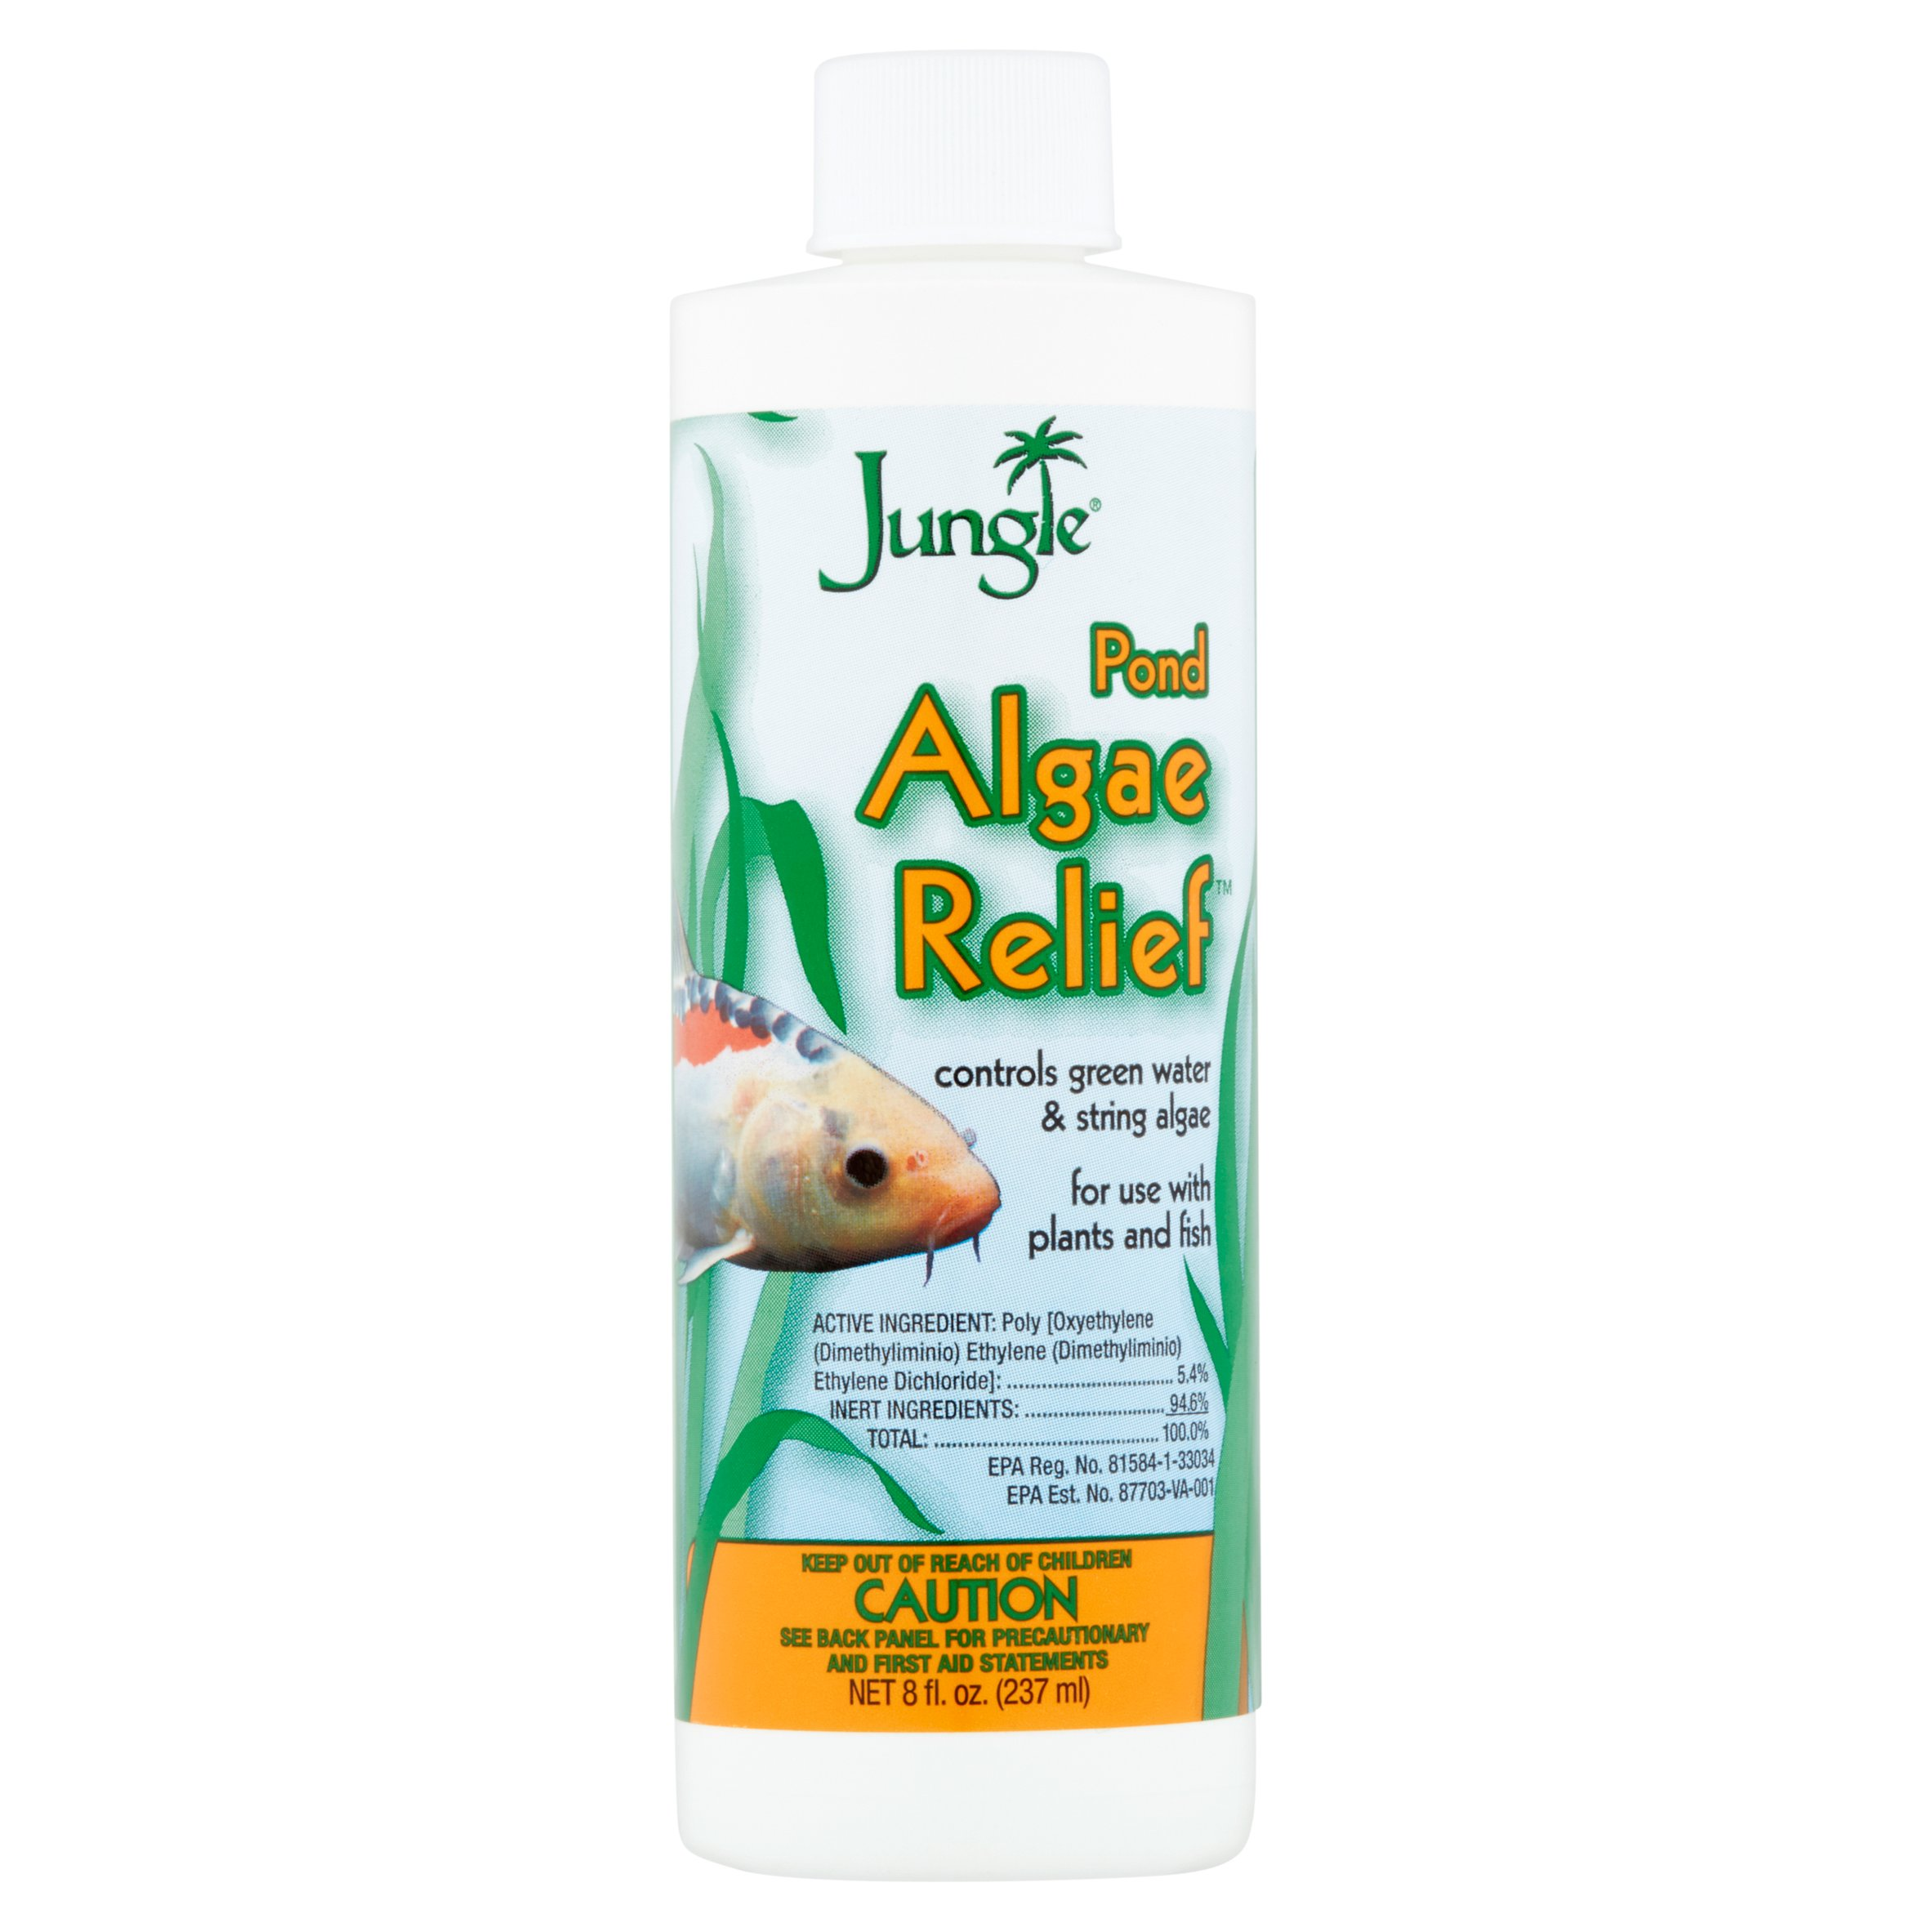 Jungle Pond Algae Relief Cleaner for Aquariums, 8-Ounce